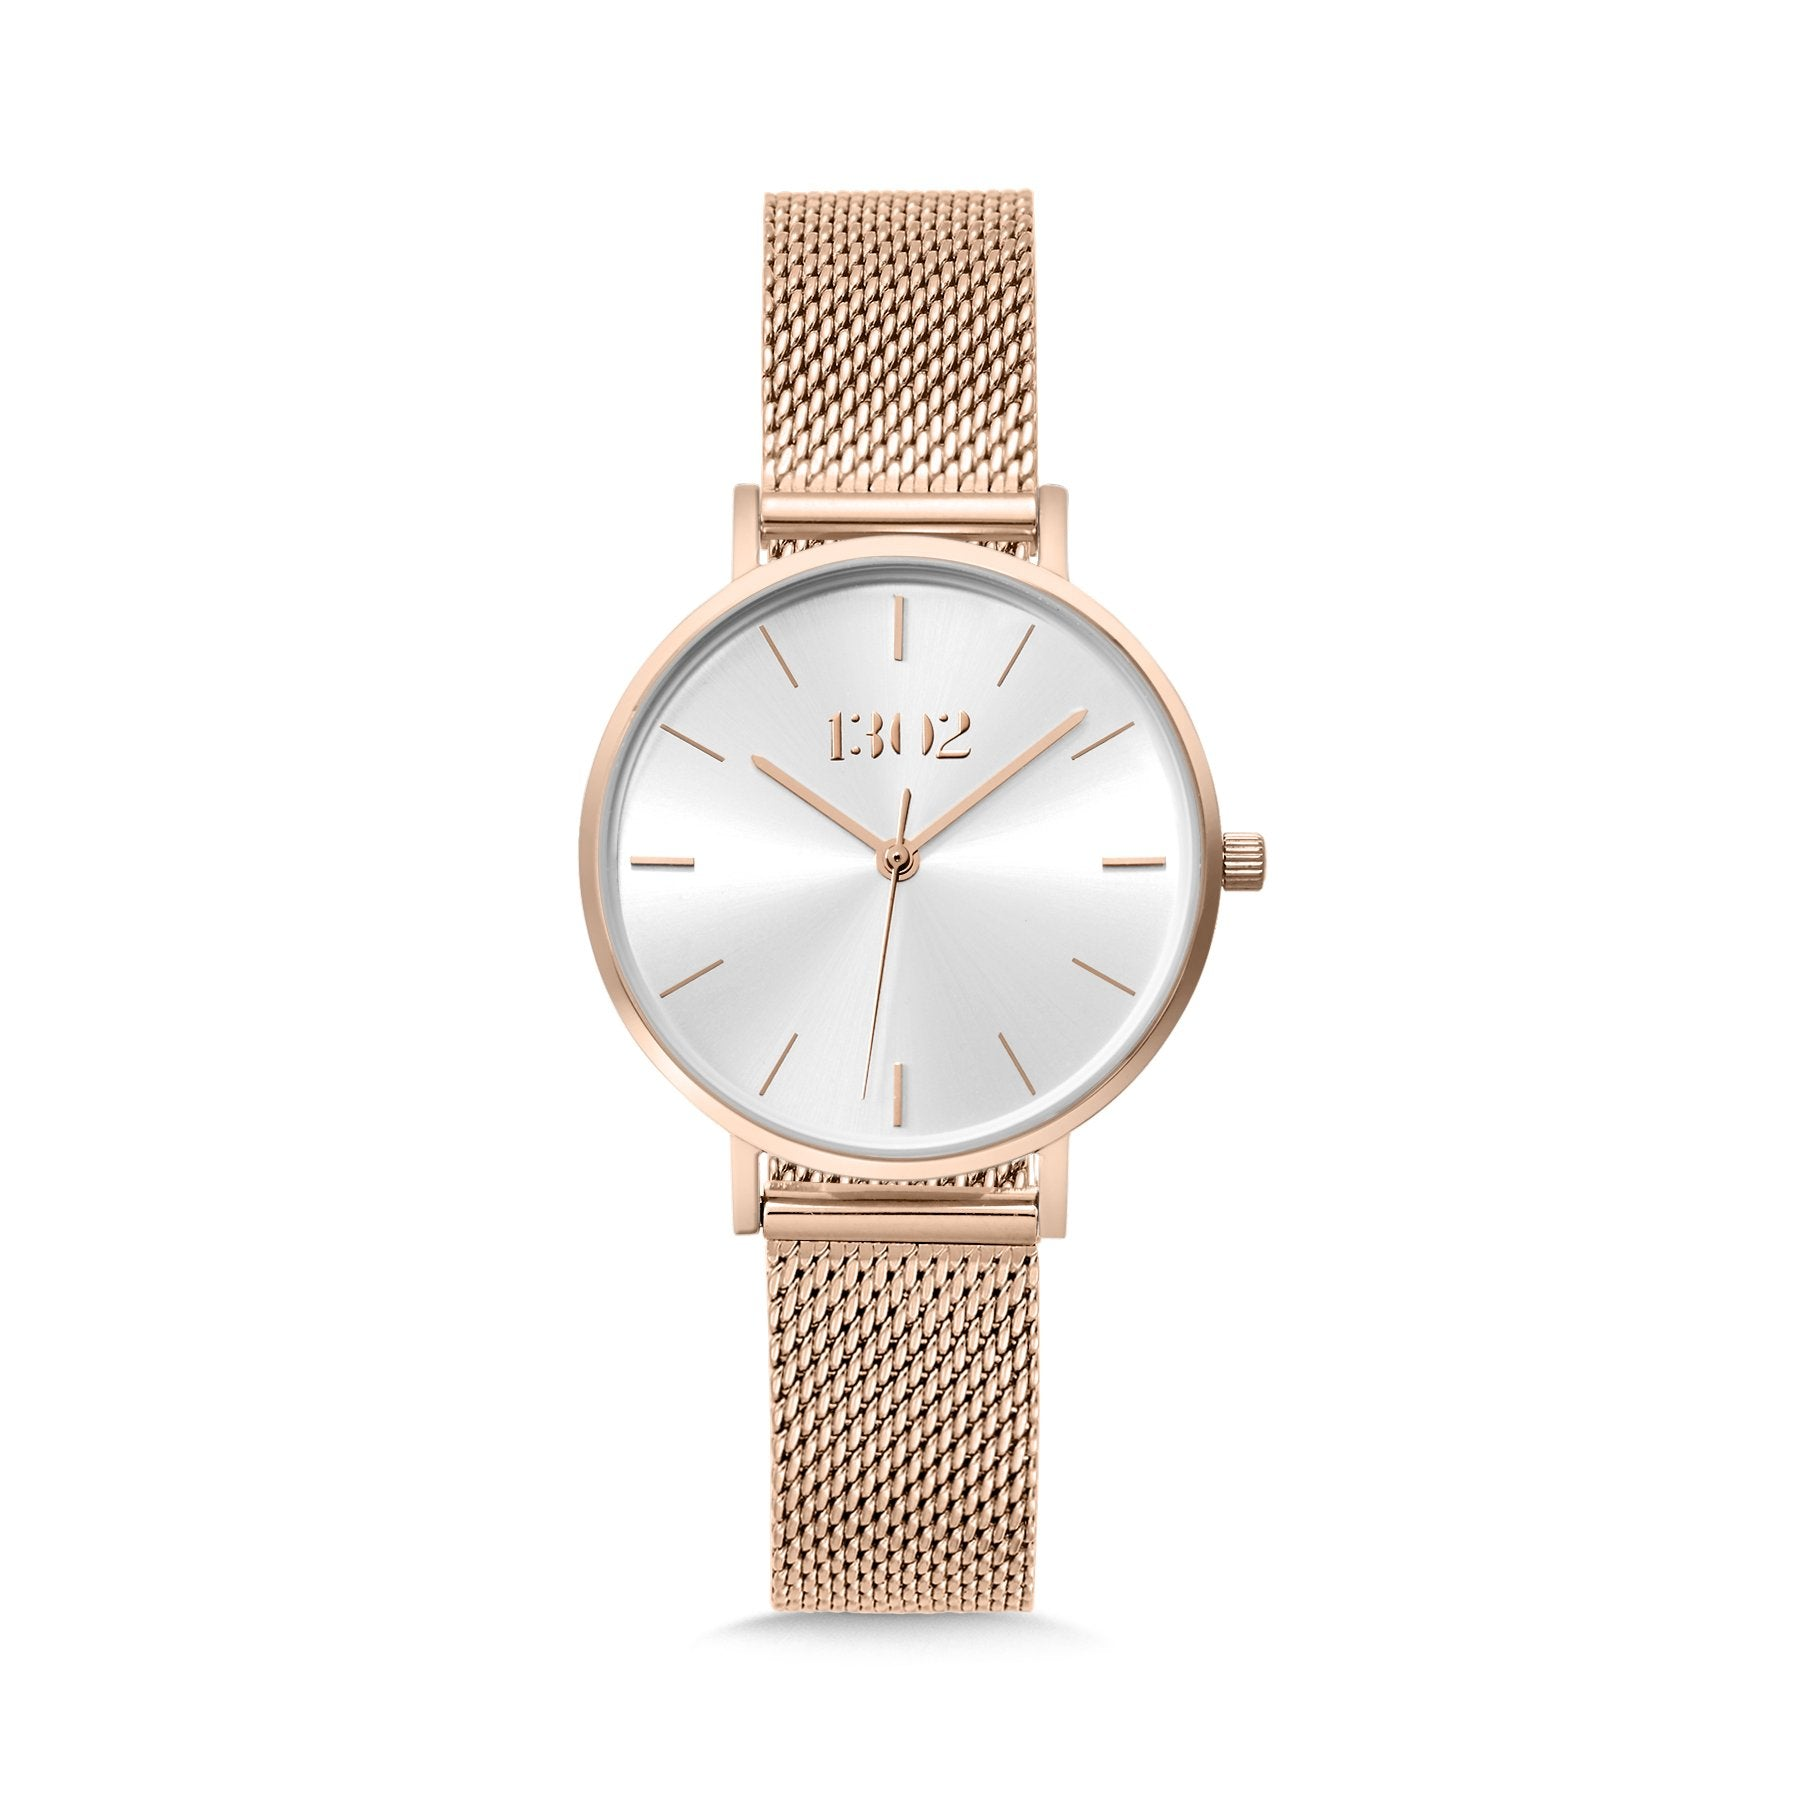 1302 32mm Rose Gold Mesh Watch